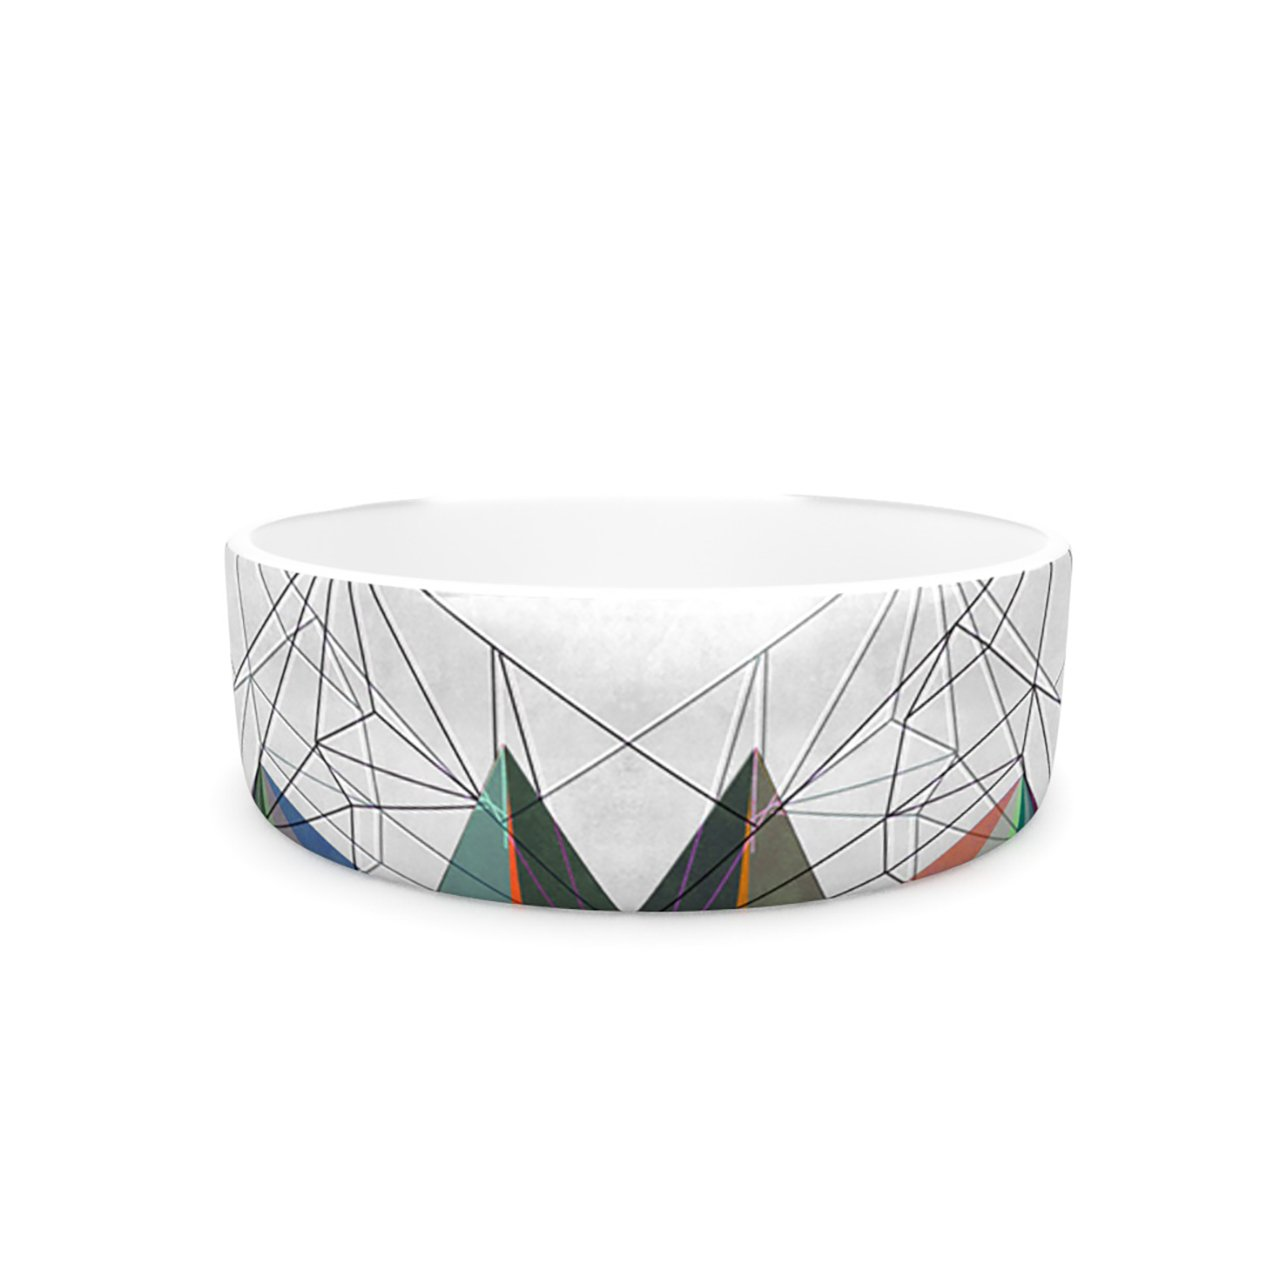 Kess InHouse Mareike Boehmer colorflash 3X  Pet Bowl, 7-Inch, Grey Rainbow